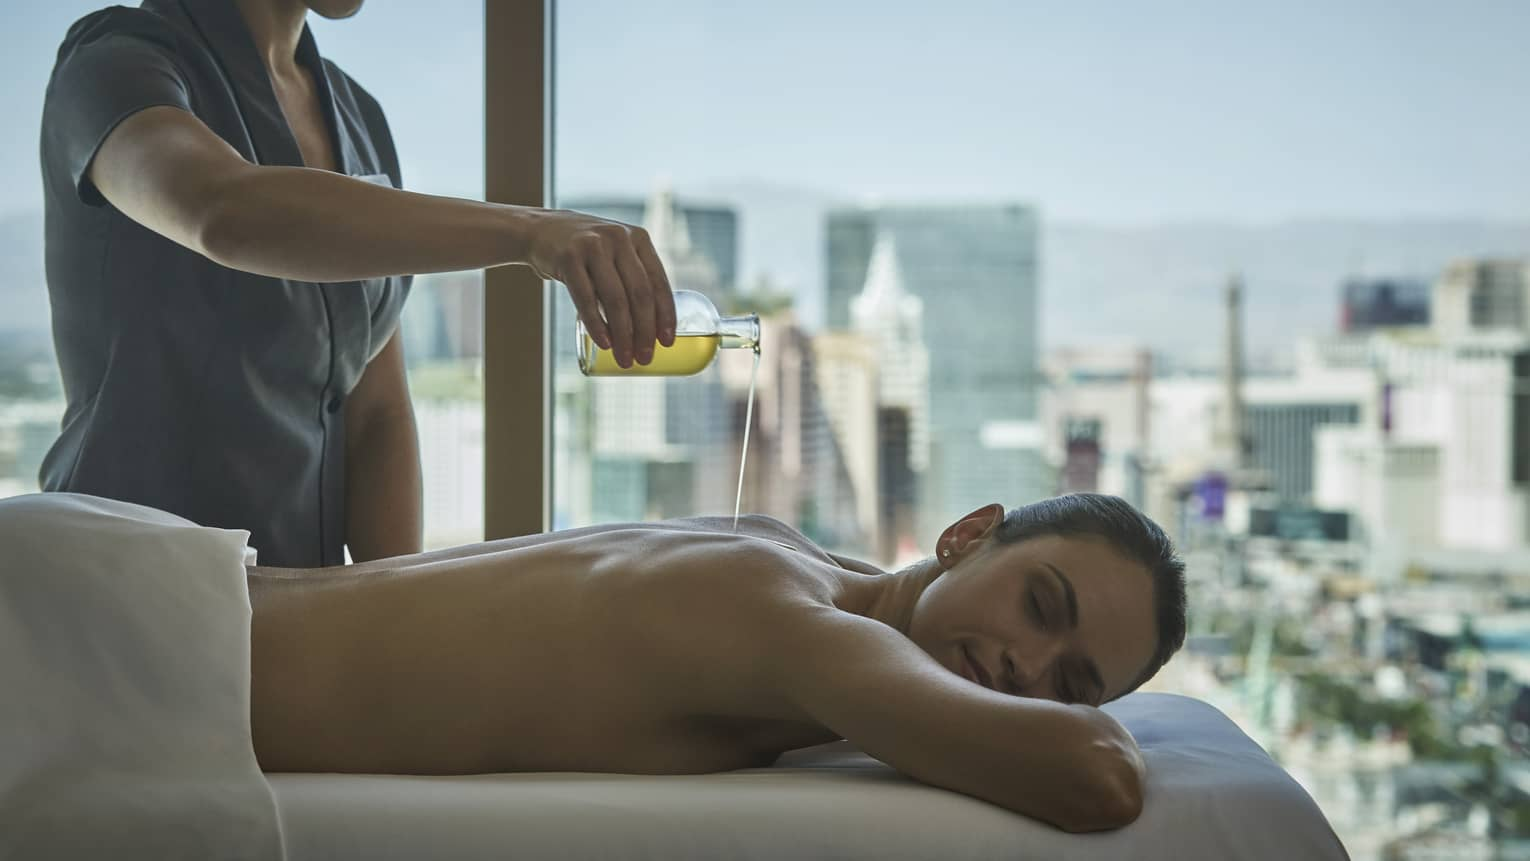 A woman with eyes closed lies on massage table and receives a treatment in a room with a view of the city skyline